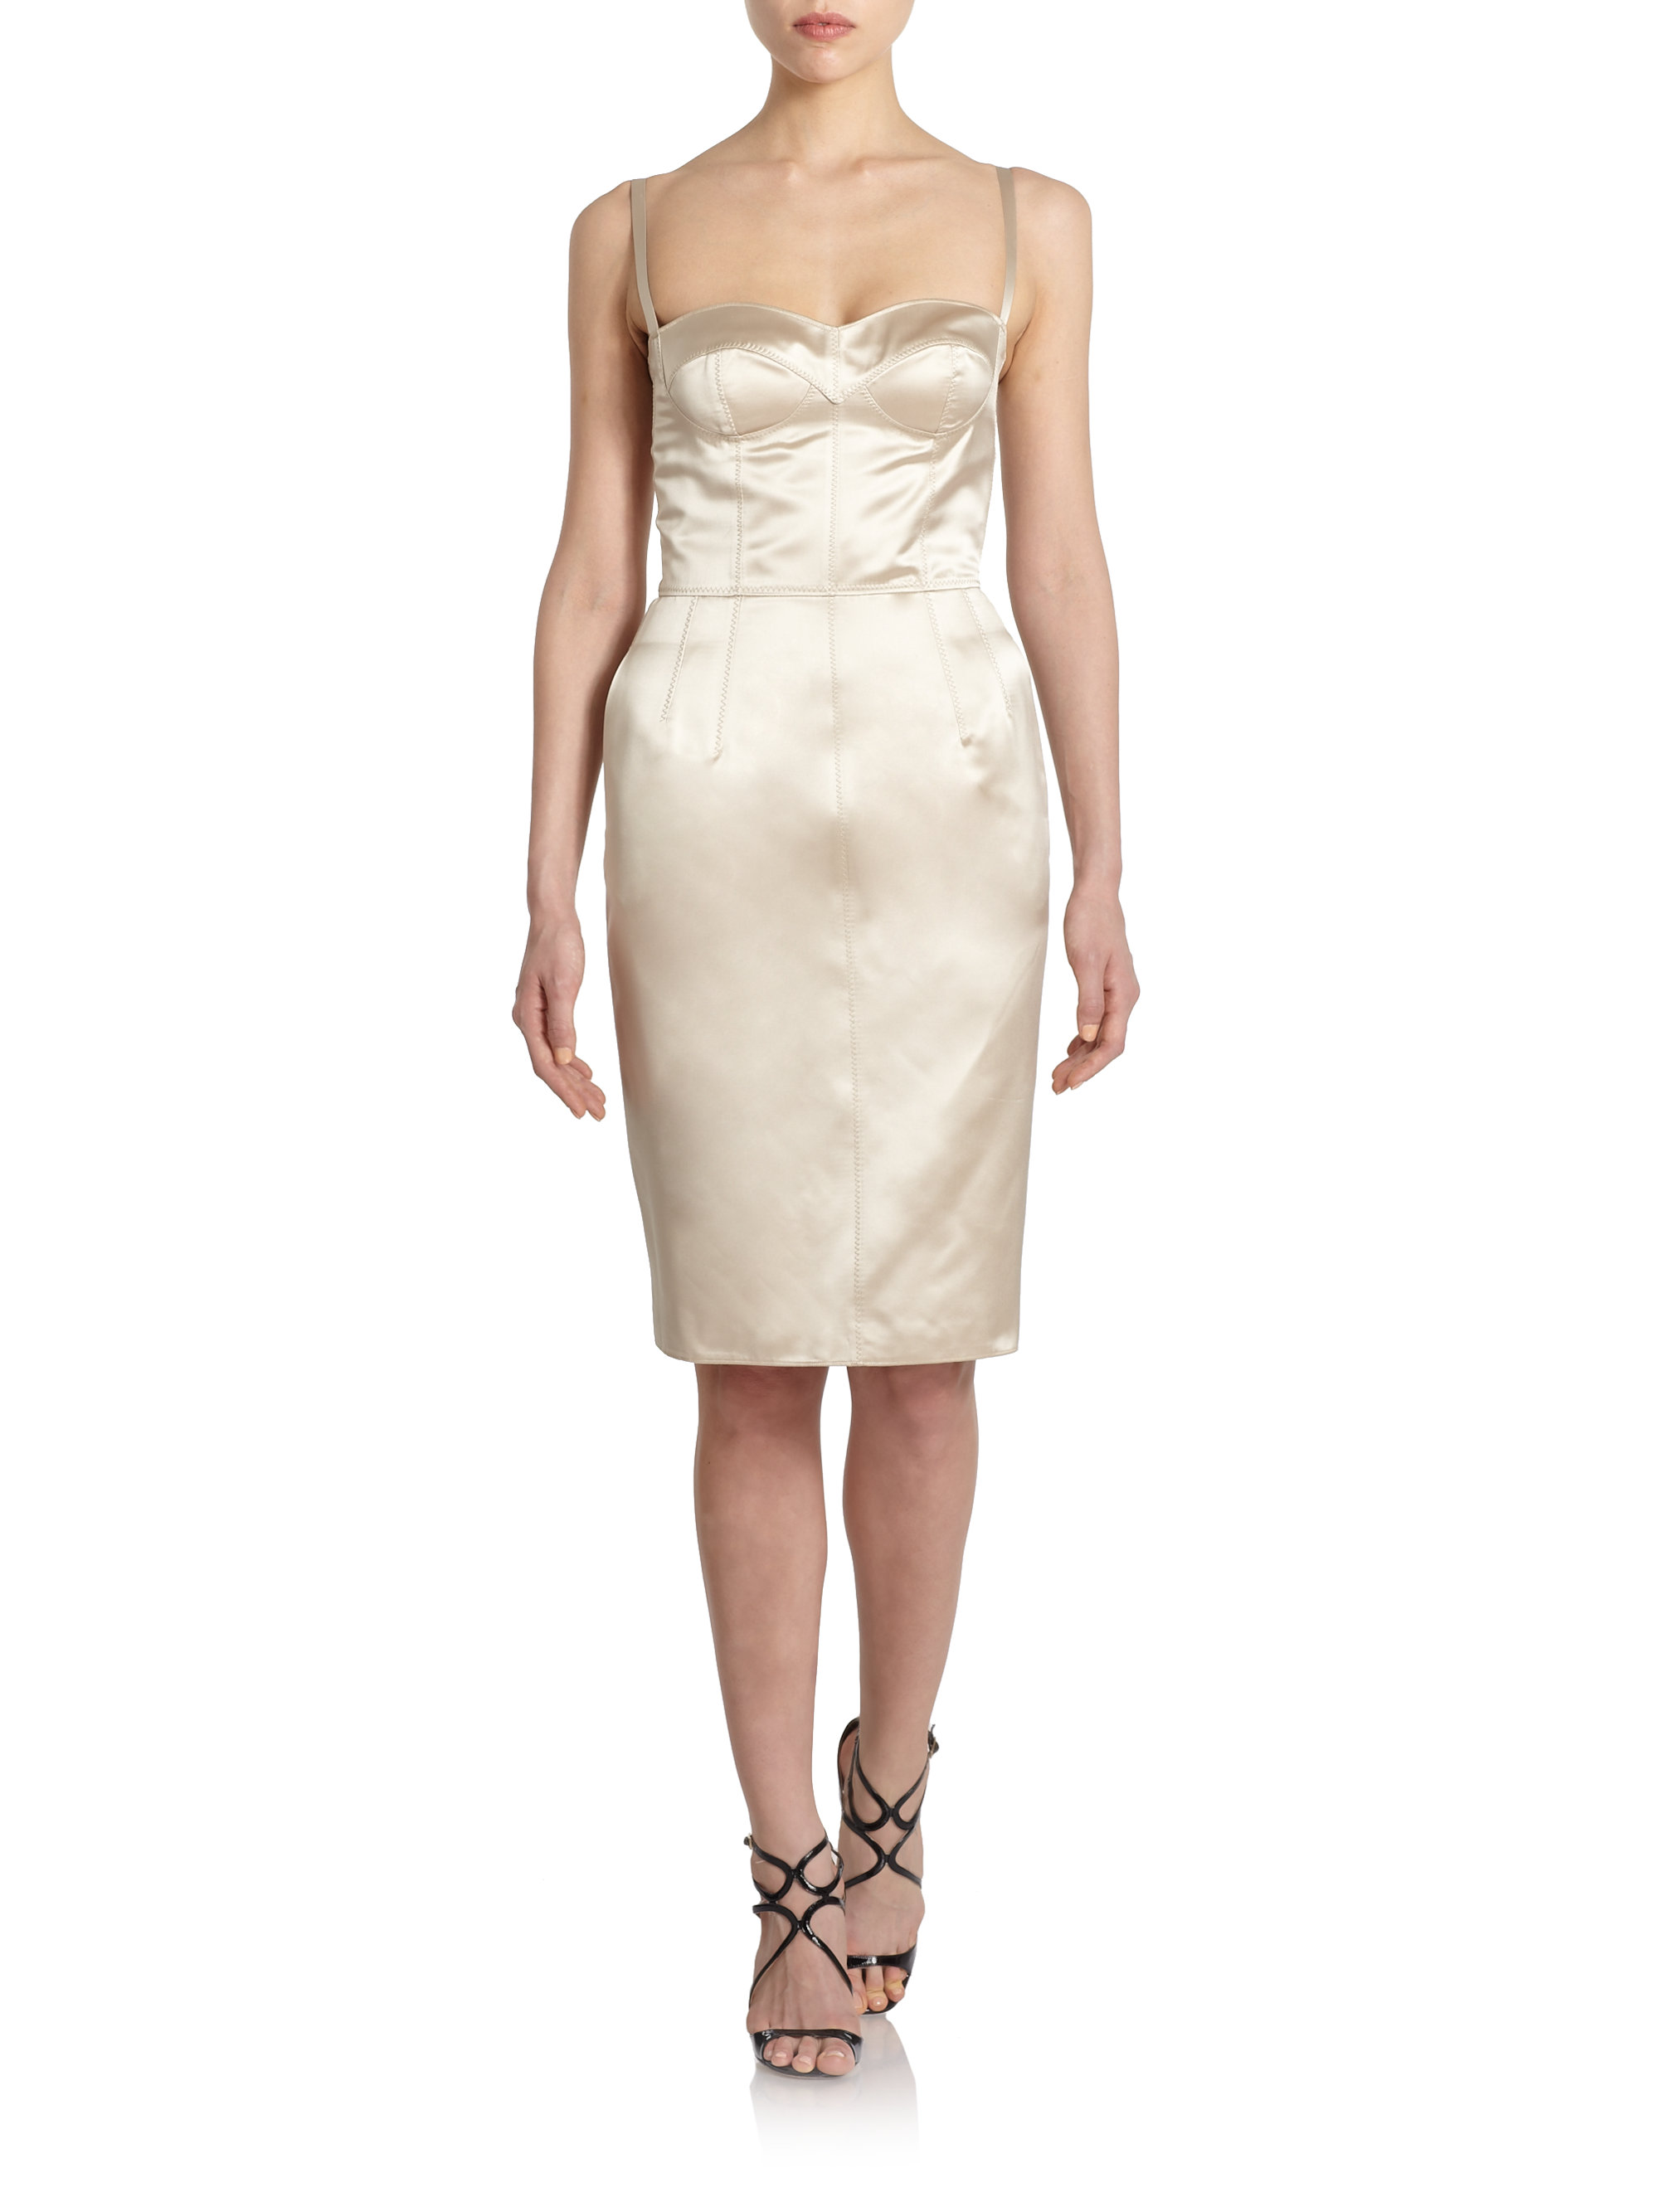 Satin dress Dolce & Gabbana Sale With Credit Card From China Free Shipping How Much 0h6m4zrF